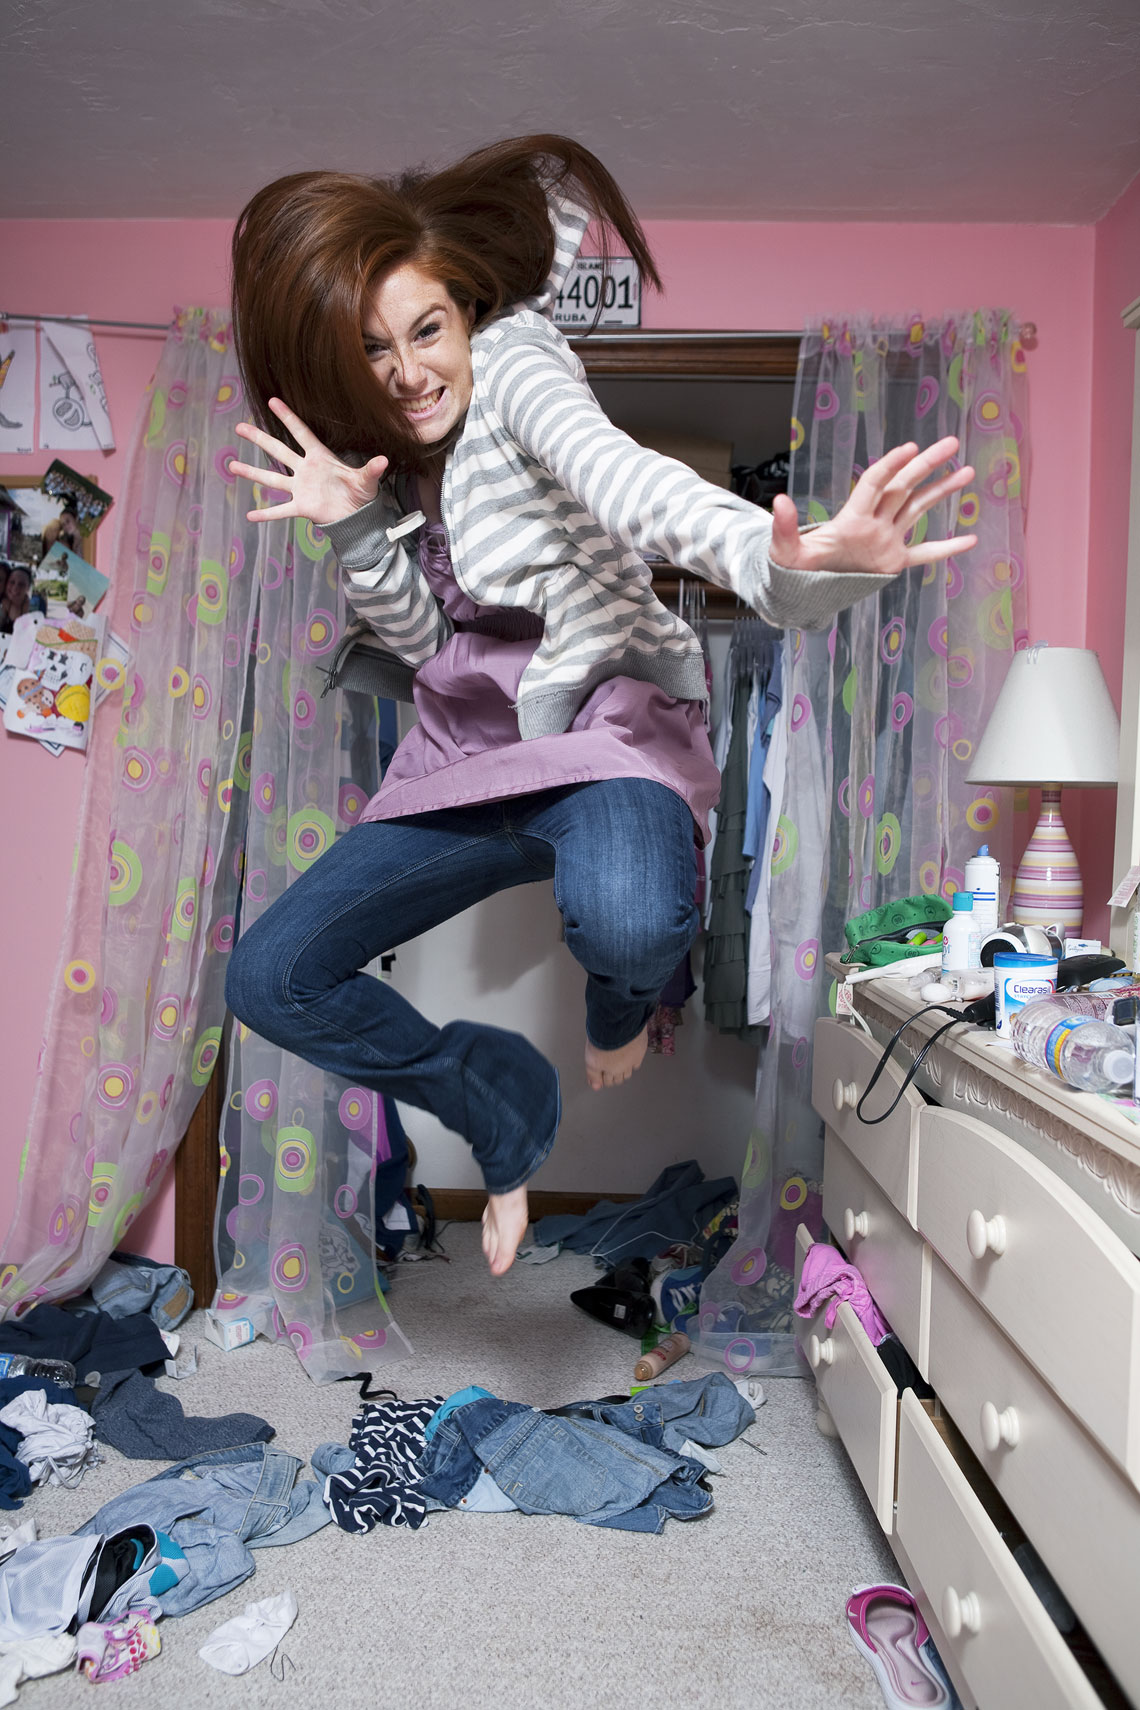 Teenage girl jumping in her messy room.